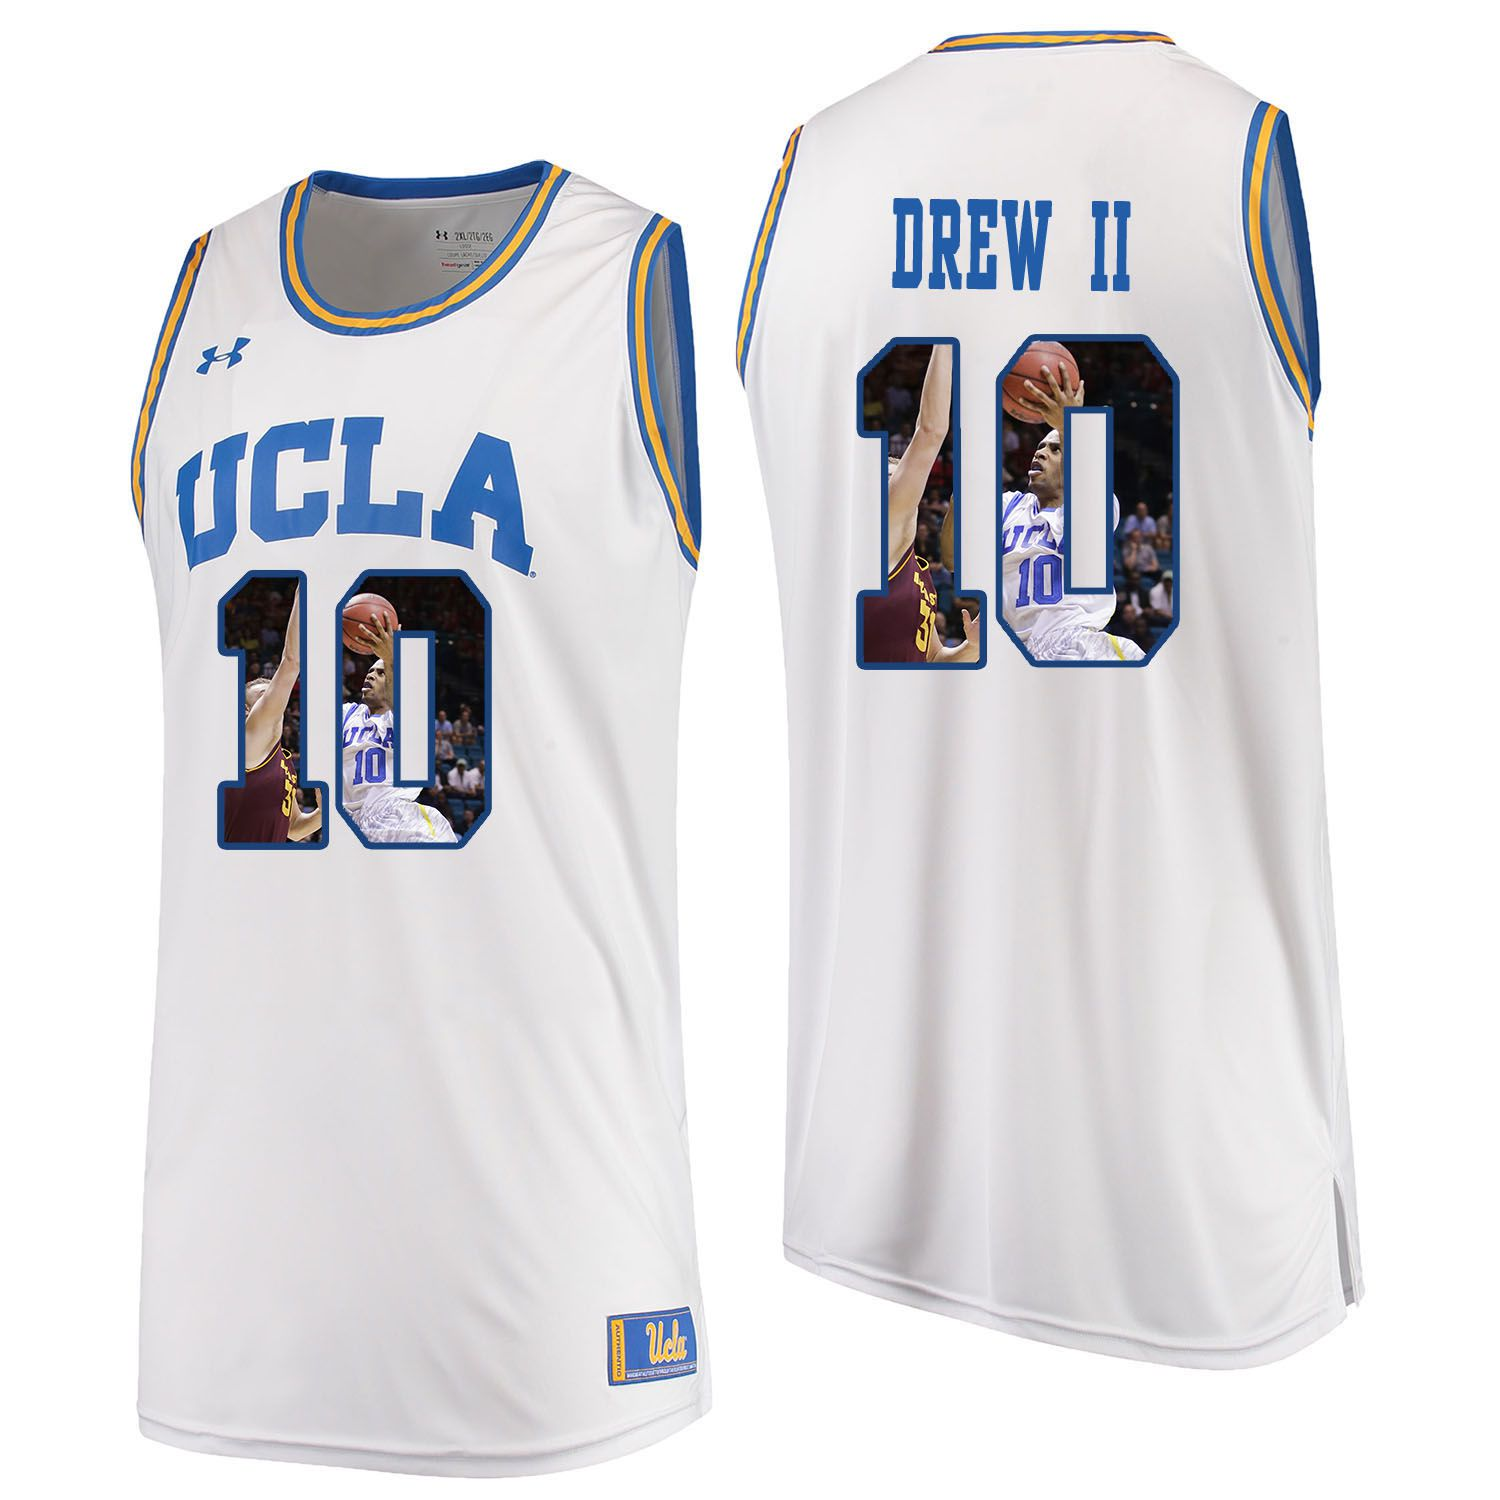 Men UCLA UA 10 Drew ii White Fashion Edition Customized NCAA Jerseys